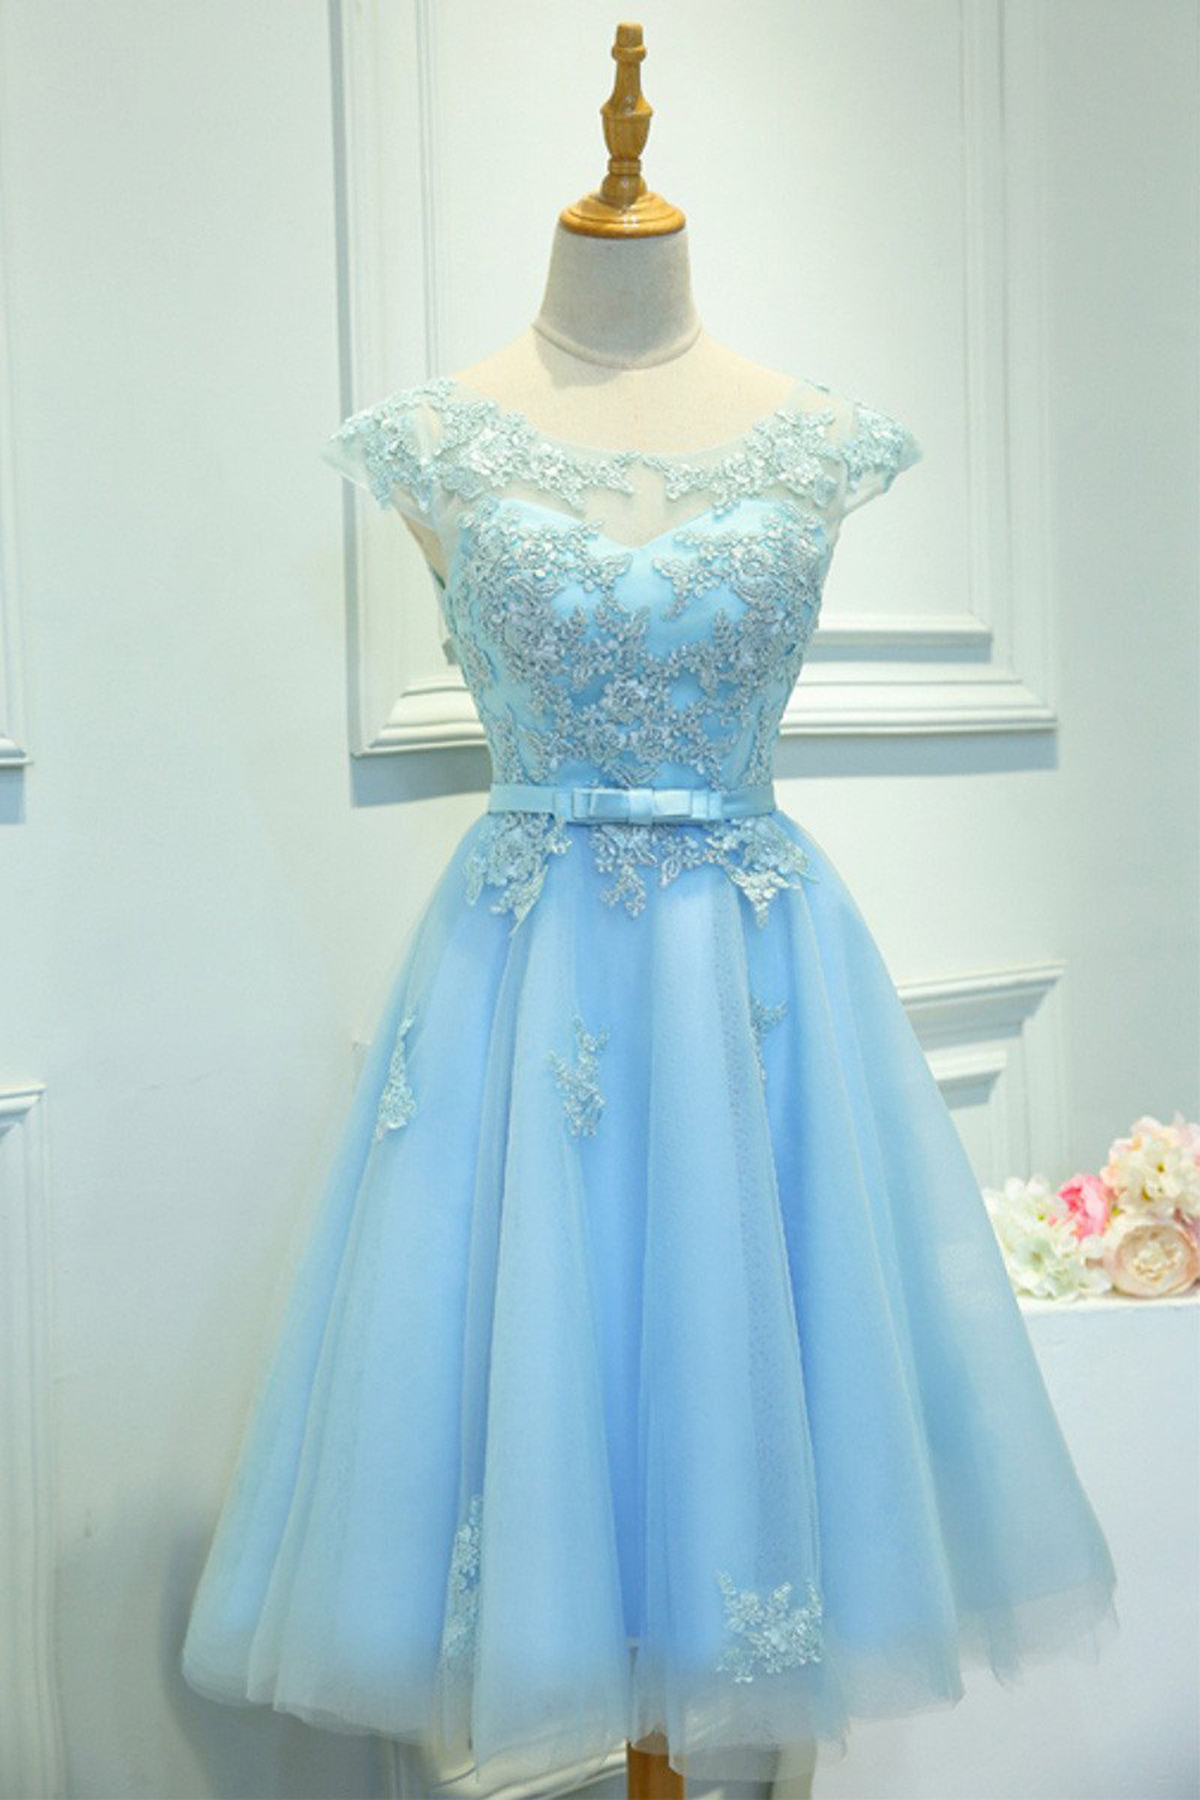 Cute ice blue lace short prom dress with bow, short homecoming ...